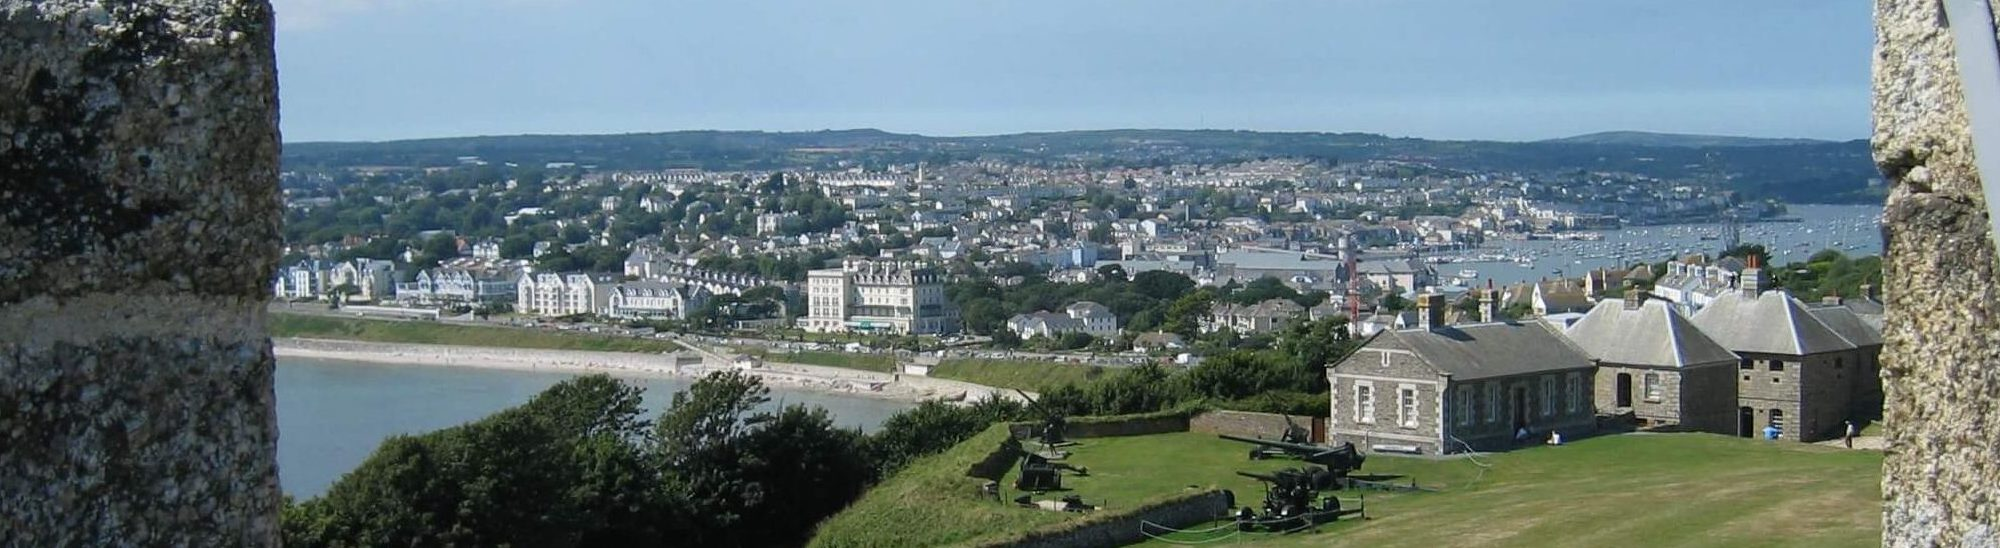 Falmouth from Pendennis